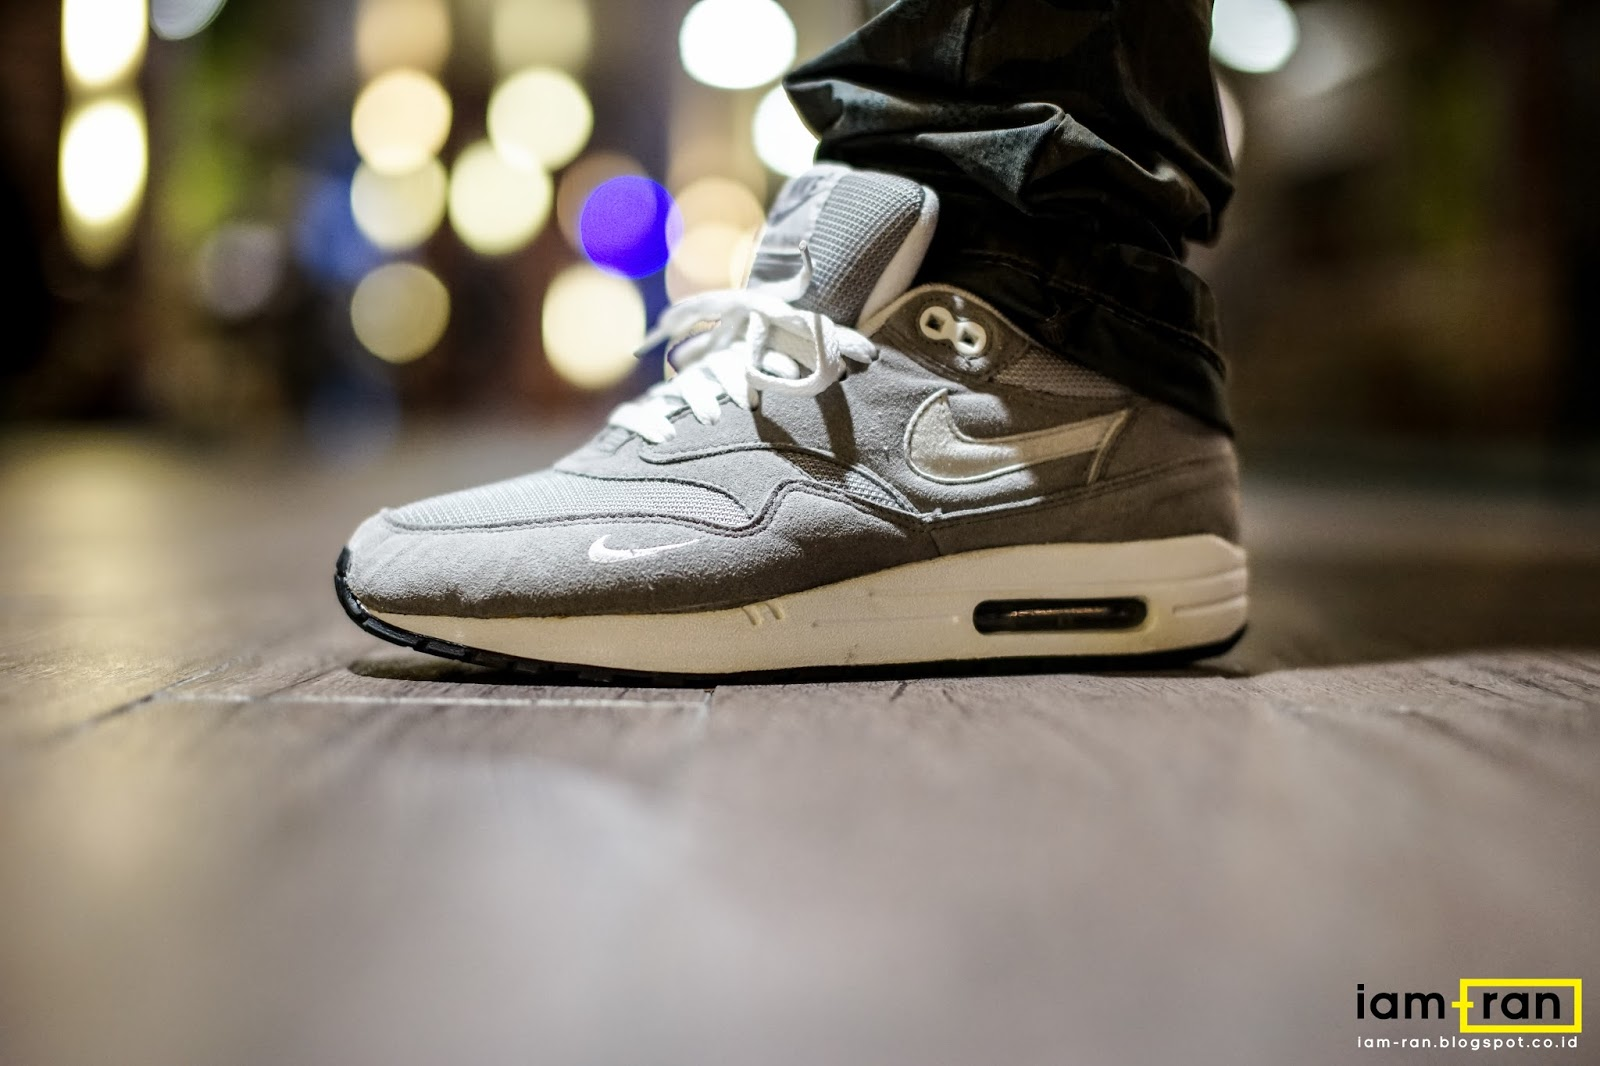 8b853268cf IAM-RAN: ON FEET : Leo - Nike Air Max 1 Gray